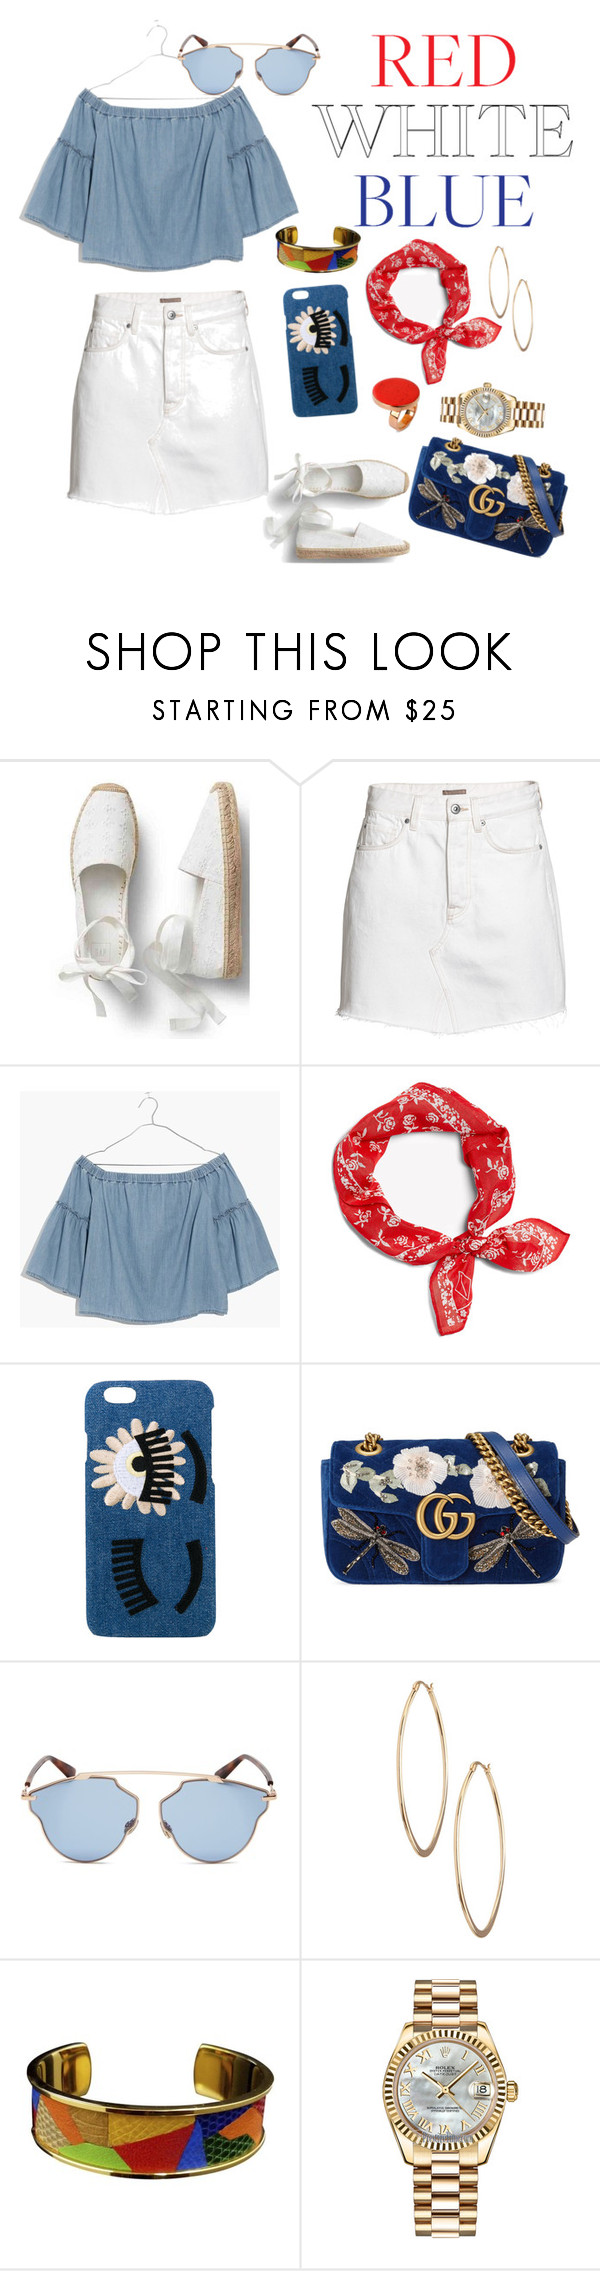 """Red white blue contest 🎉"" by eshly995 ❤ liked on Polyvore featuring Madewell, Chiara Ferragni, Gucci, Christian Dior, Lydell NYC, Hermès, Rolex and STELLA McCARTNEY"